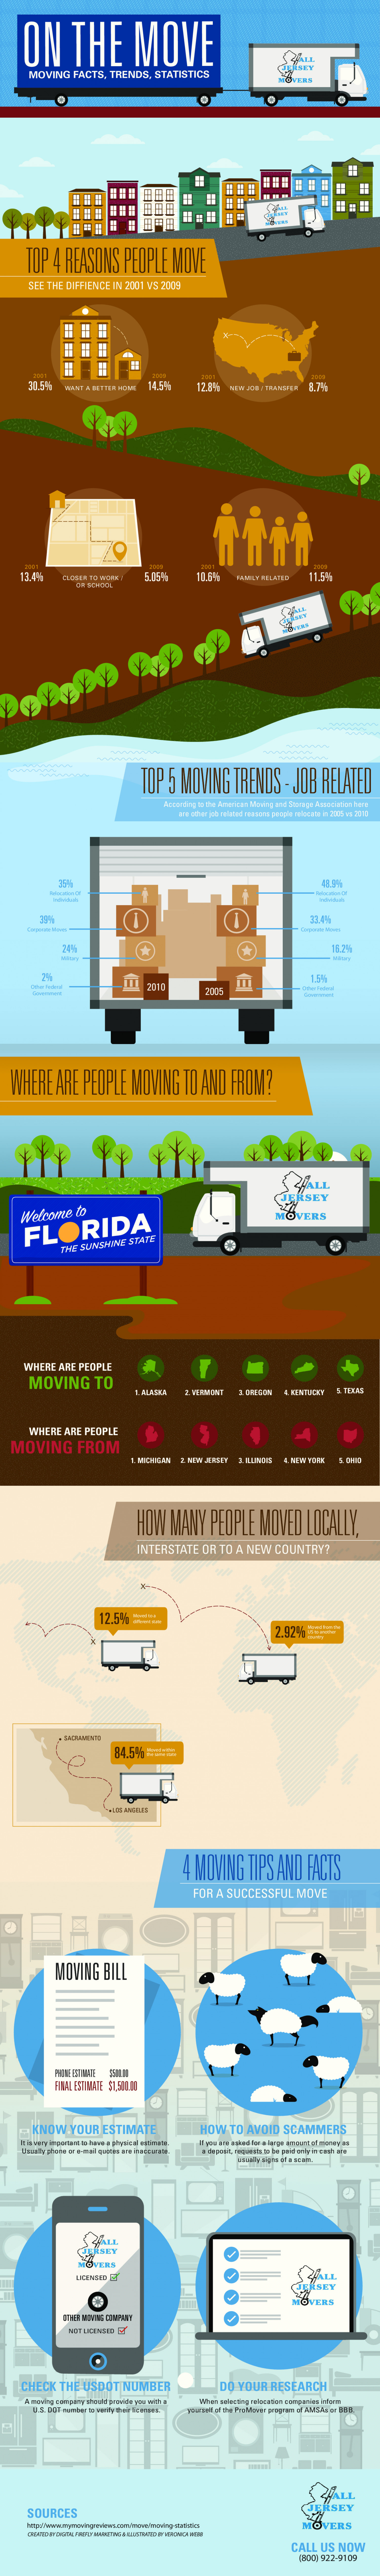 On The Move - Moving  Facts, Trends and Statistics Infographic